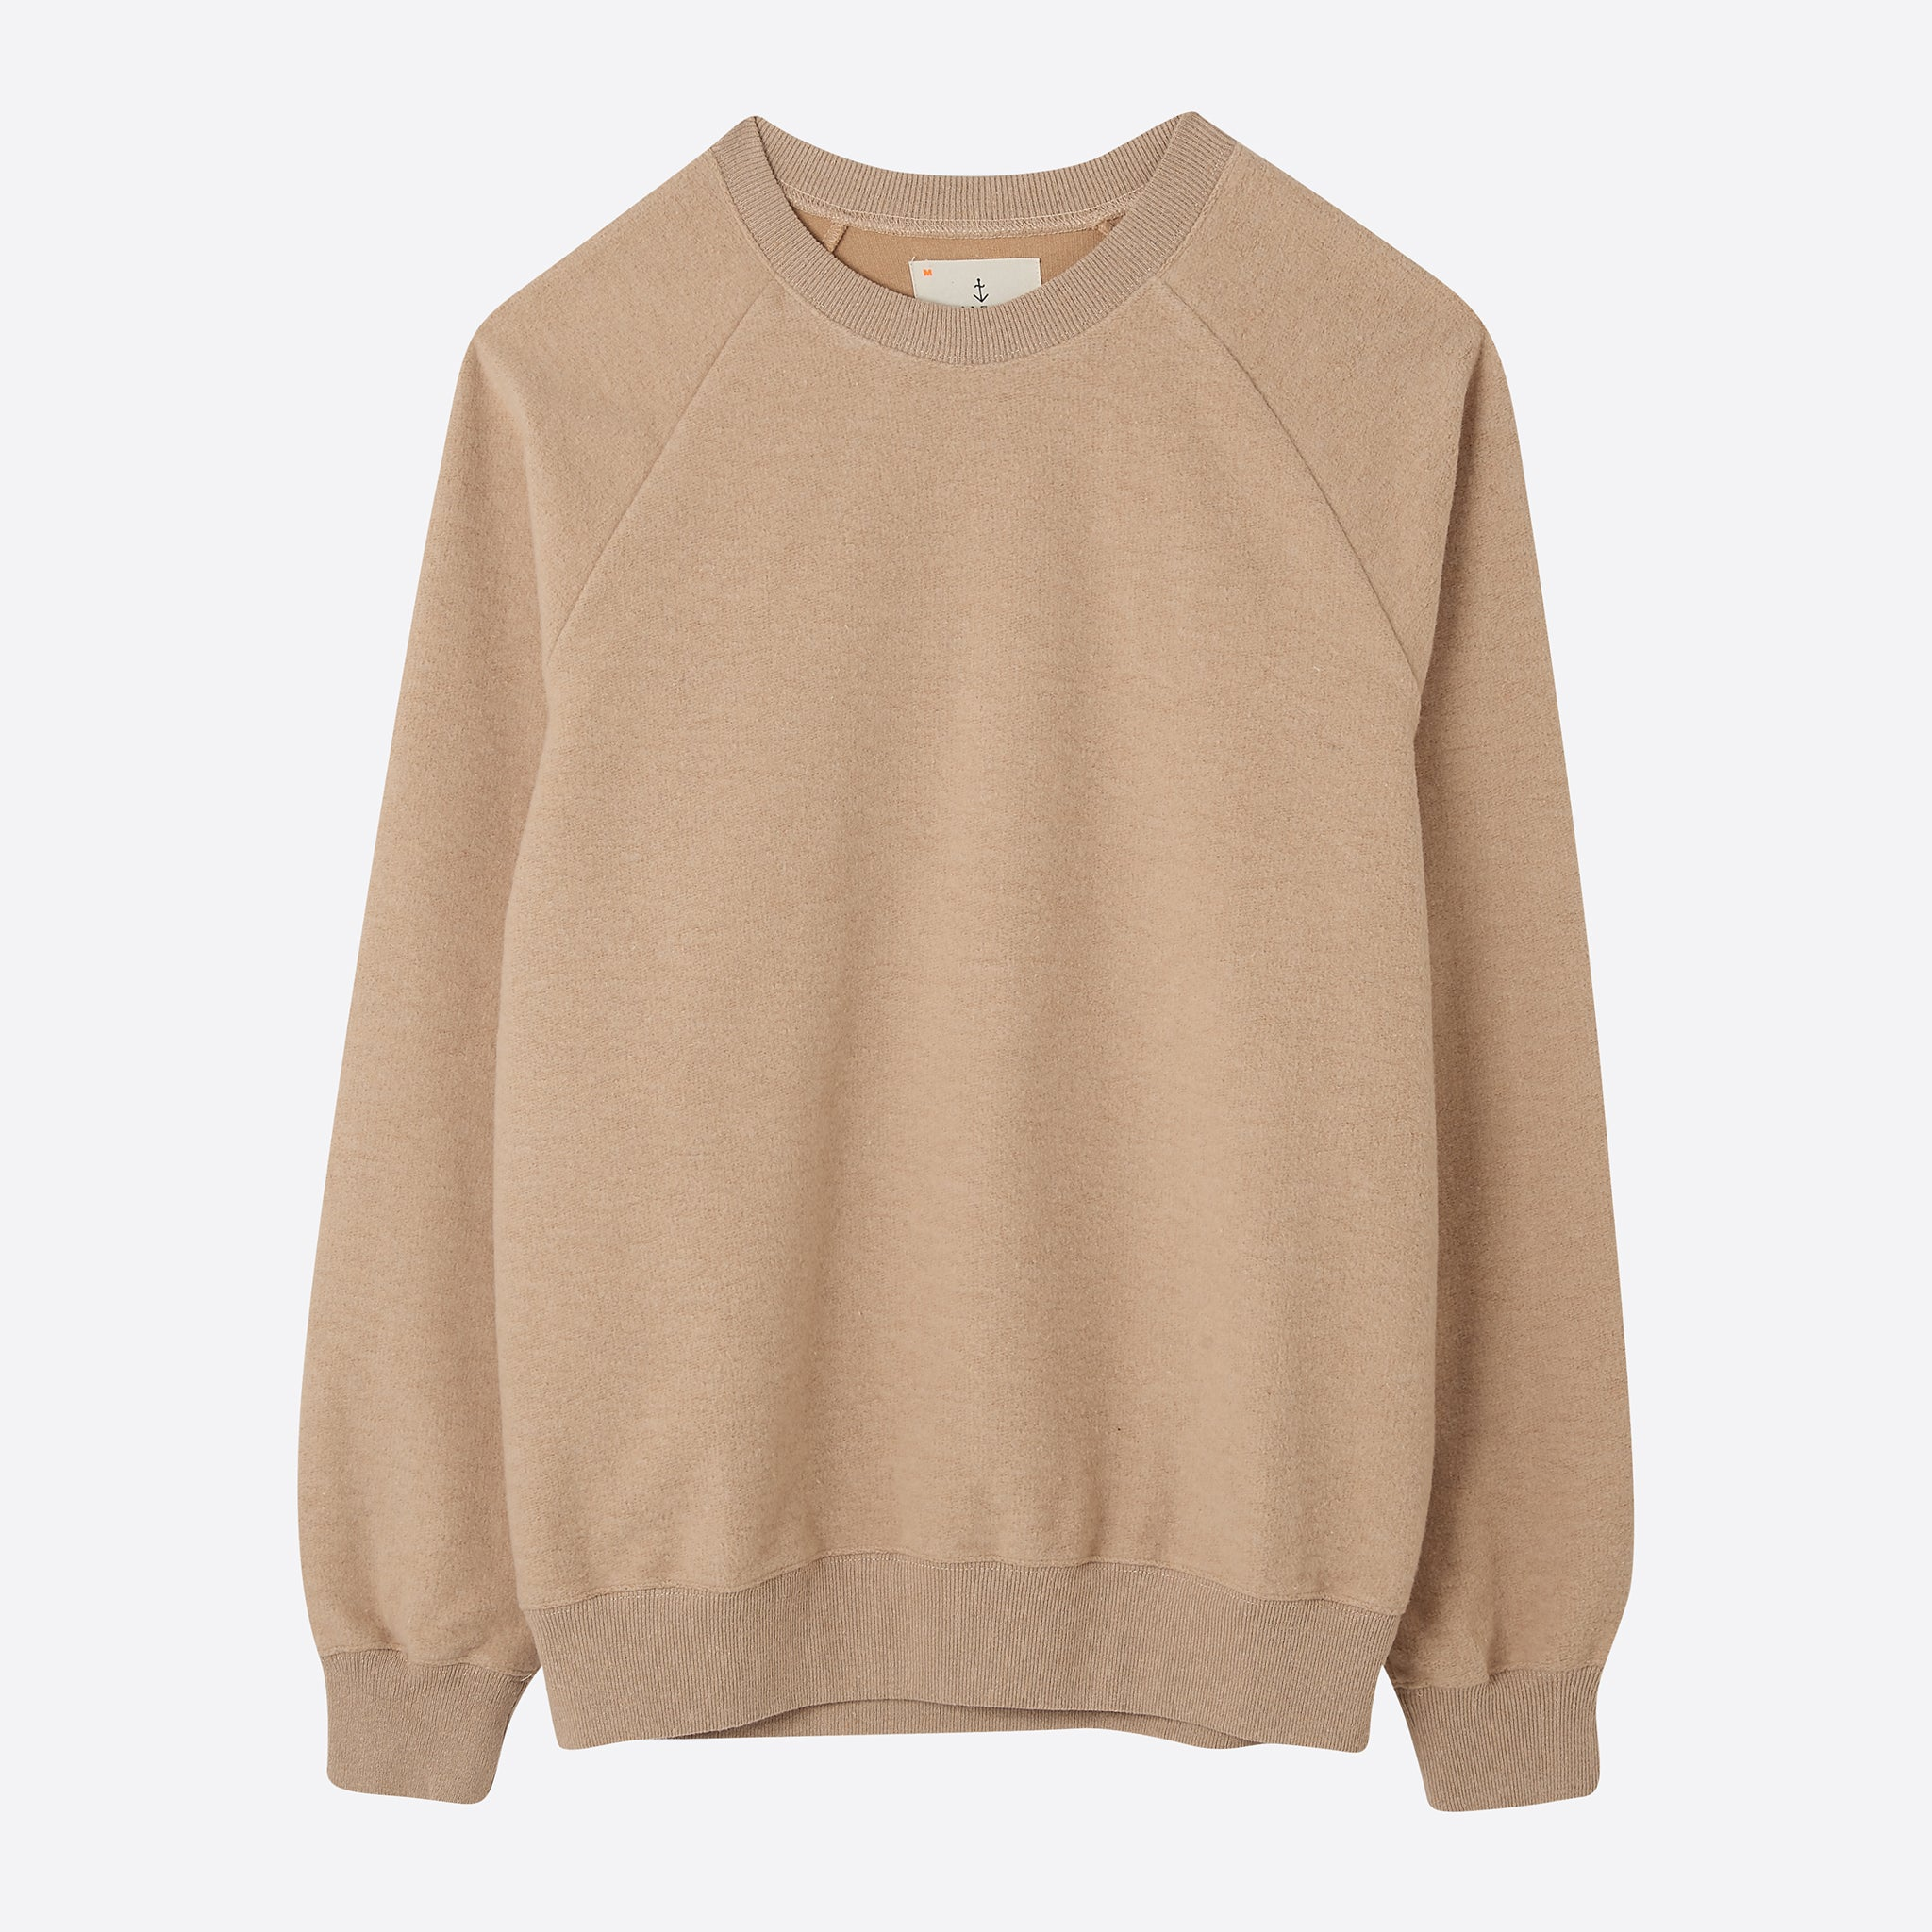 La Paz Cunha 2 Sweatshirt in Camel Upcycled Cotton